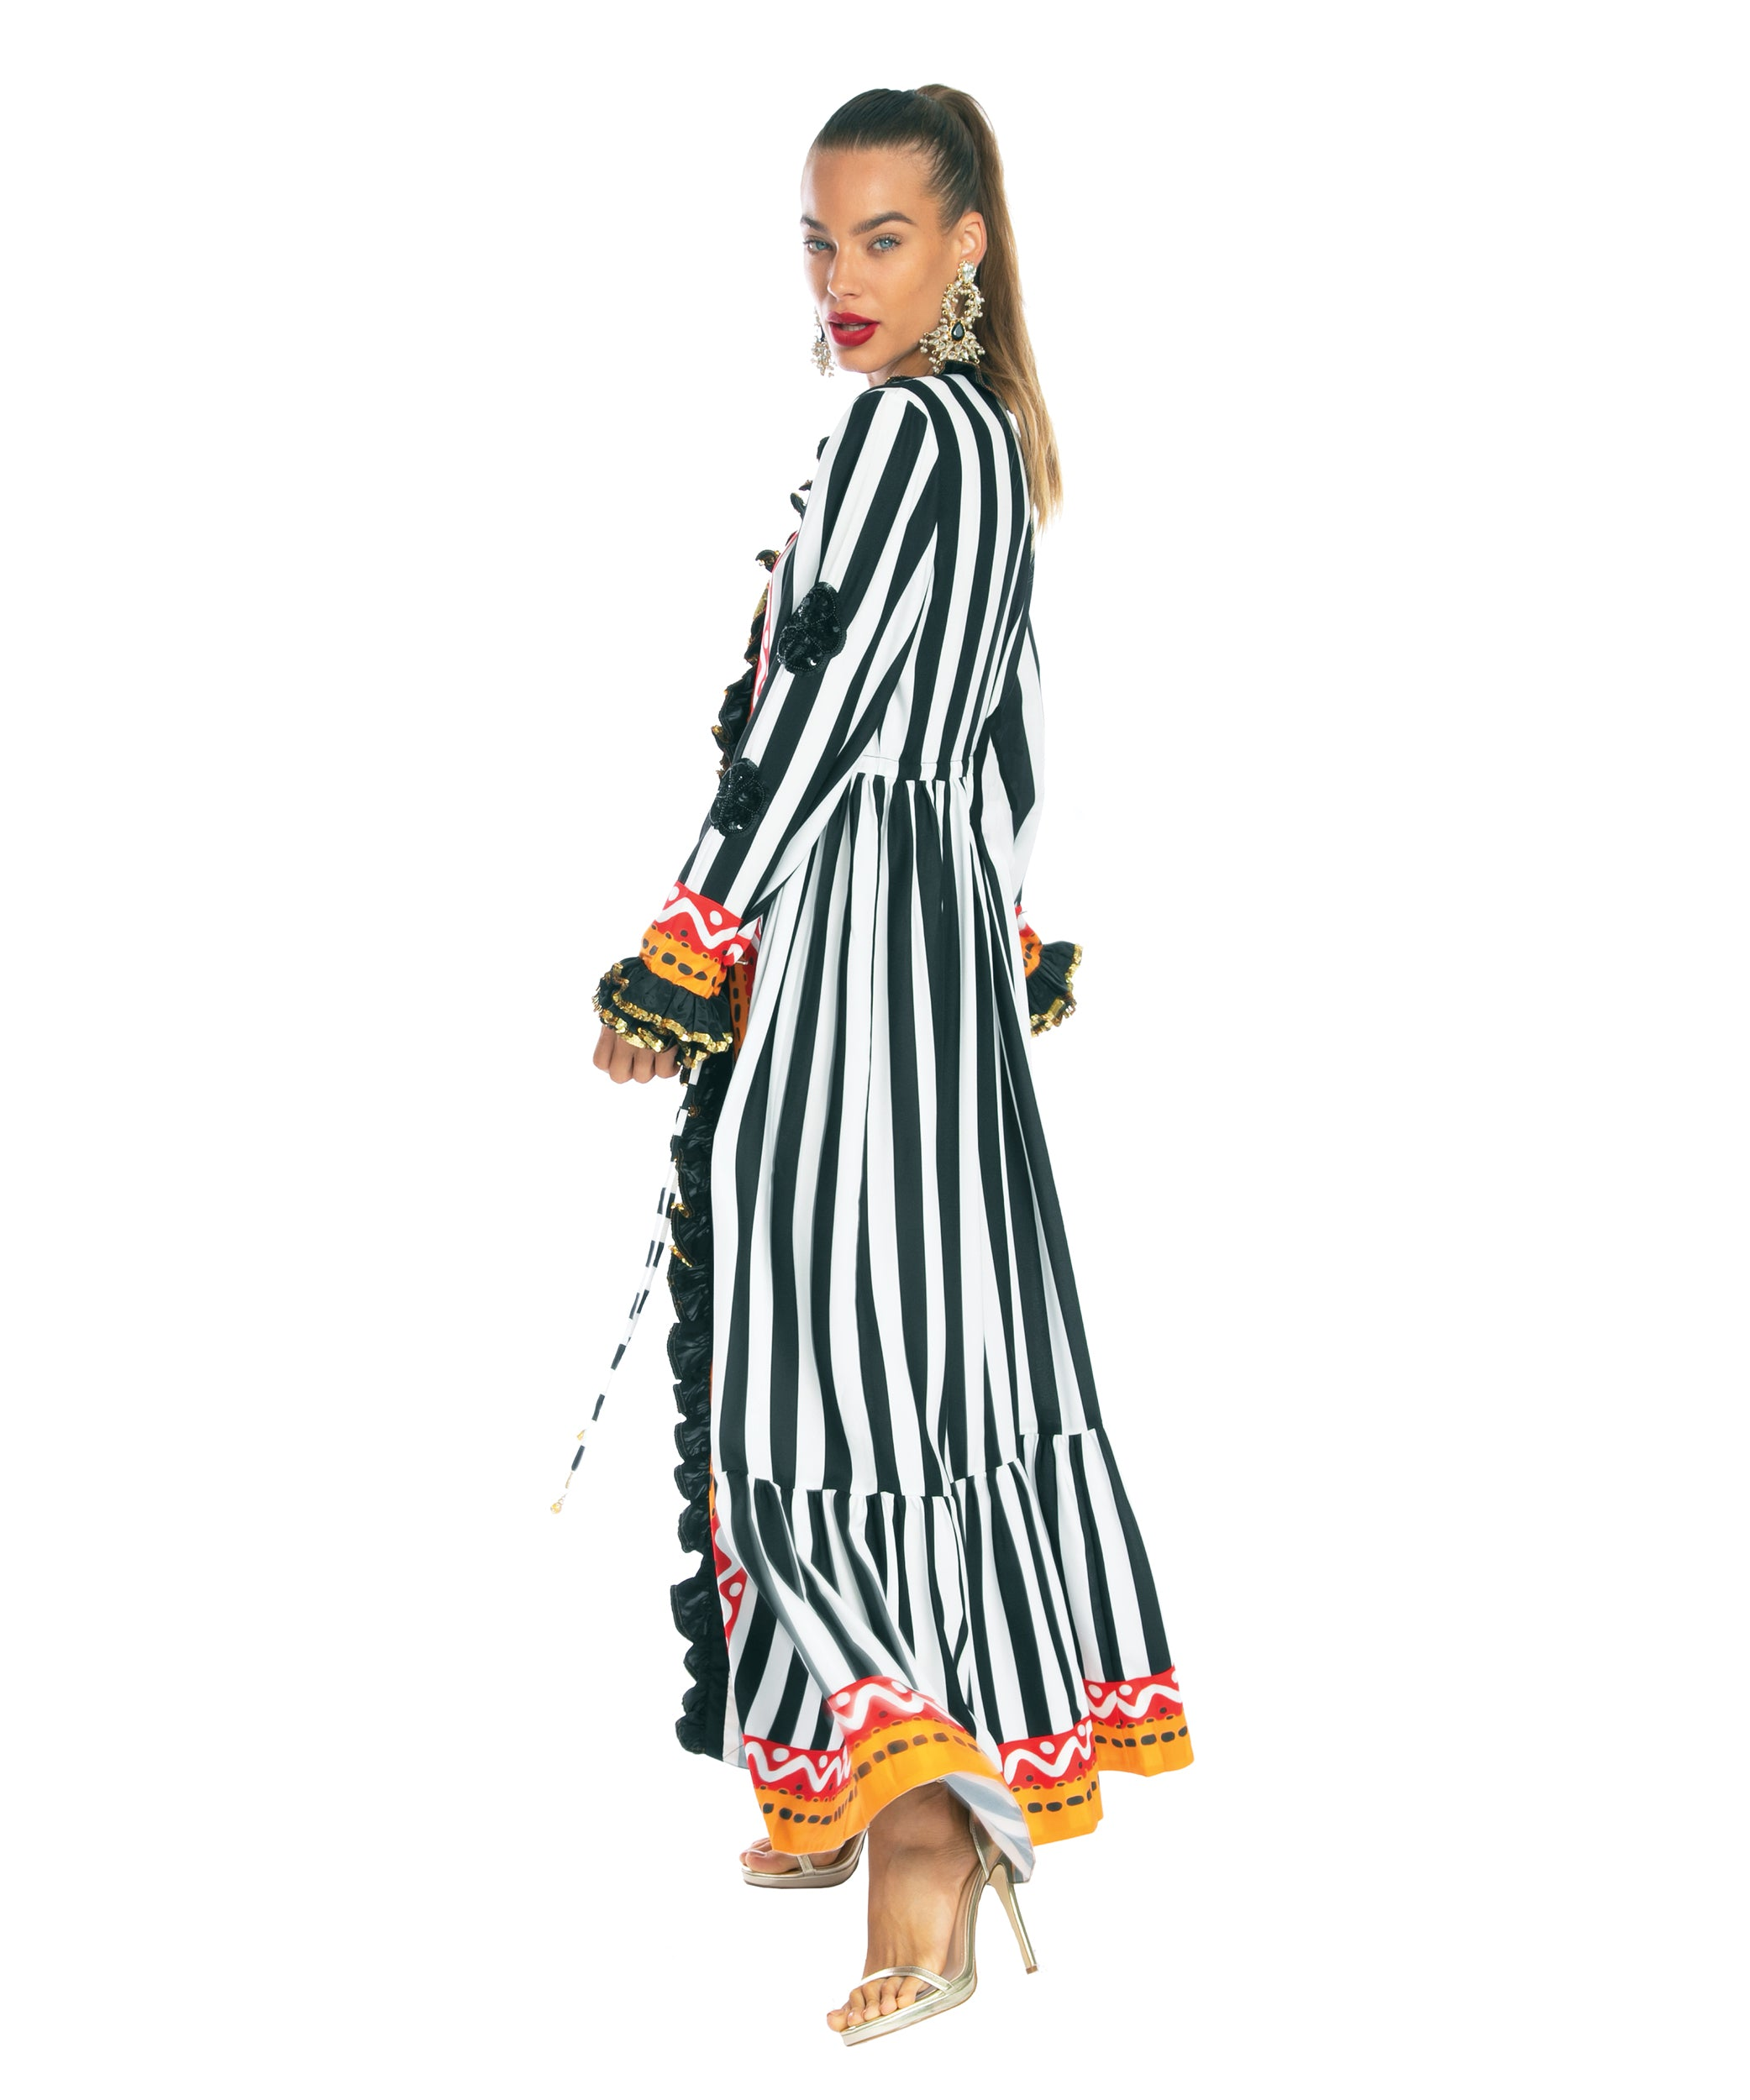 The Tribal Long Sleeved Ruffle Dress by Bonita Kaftans